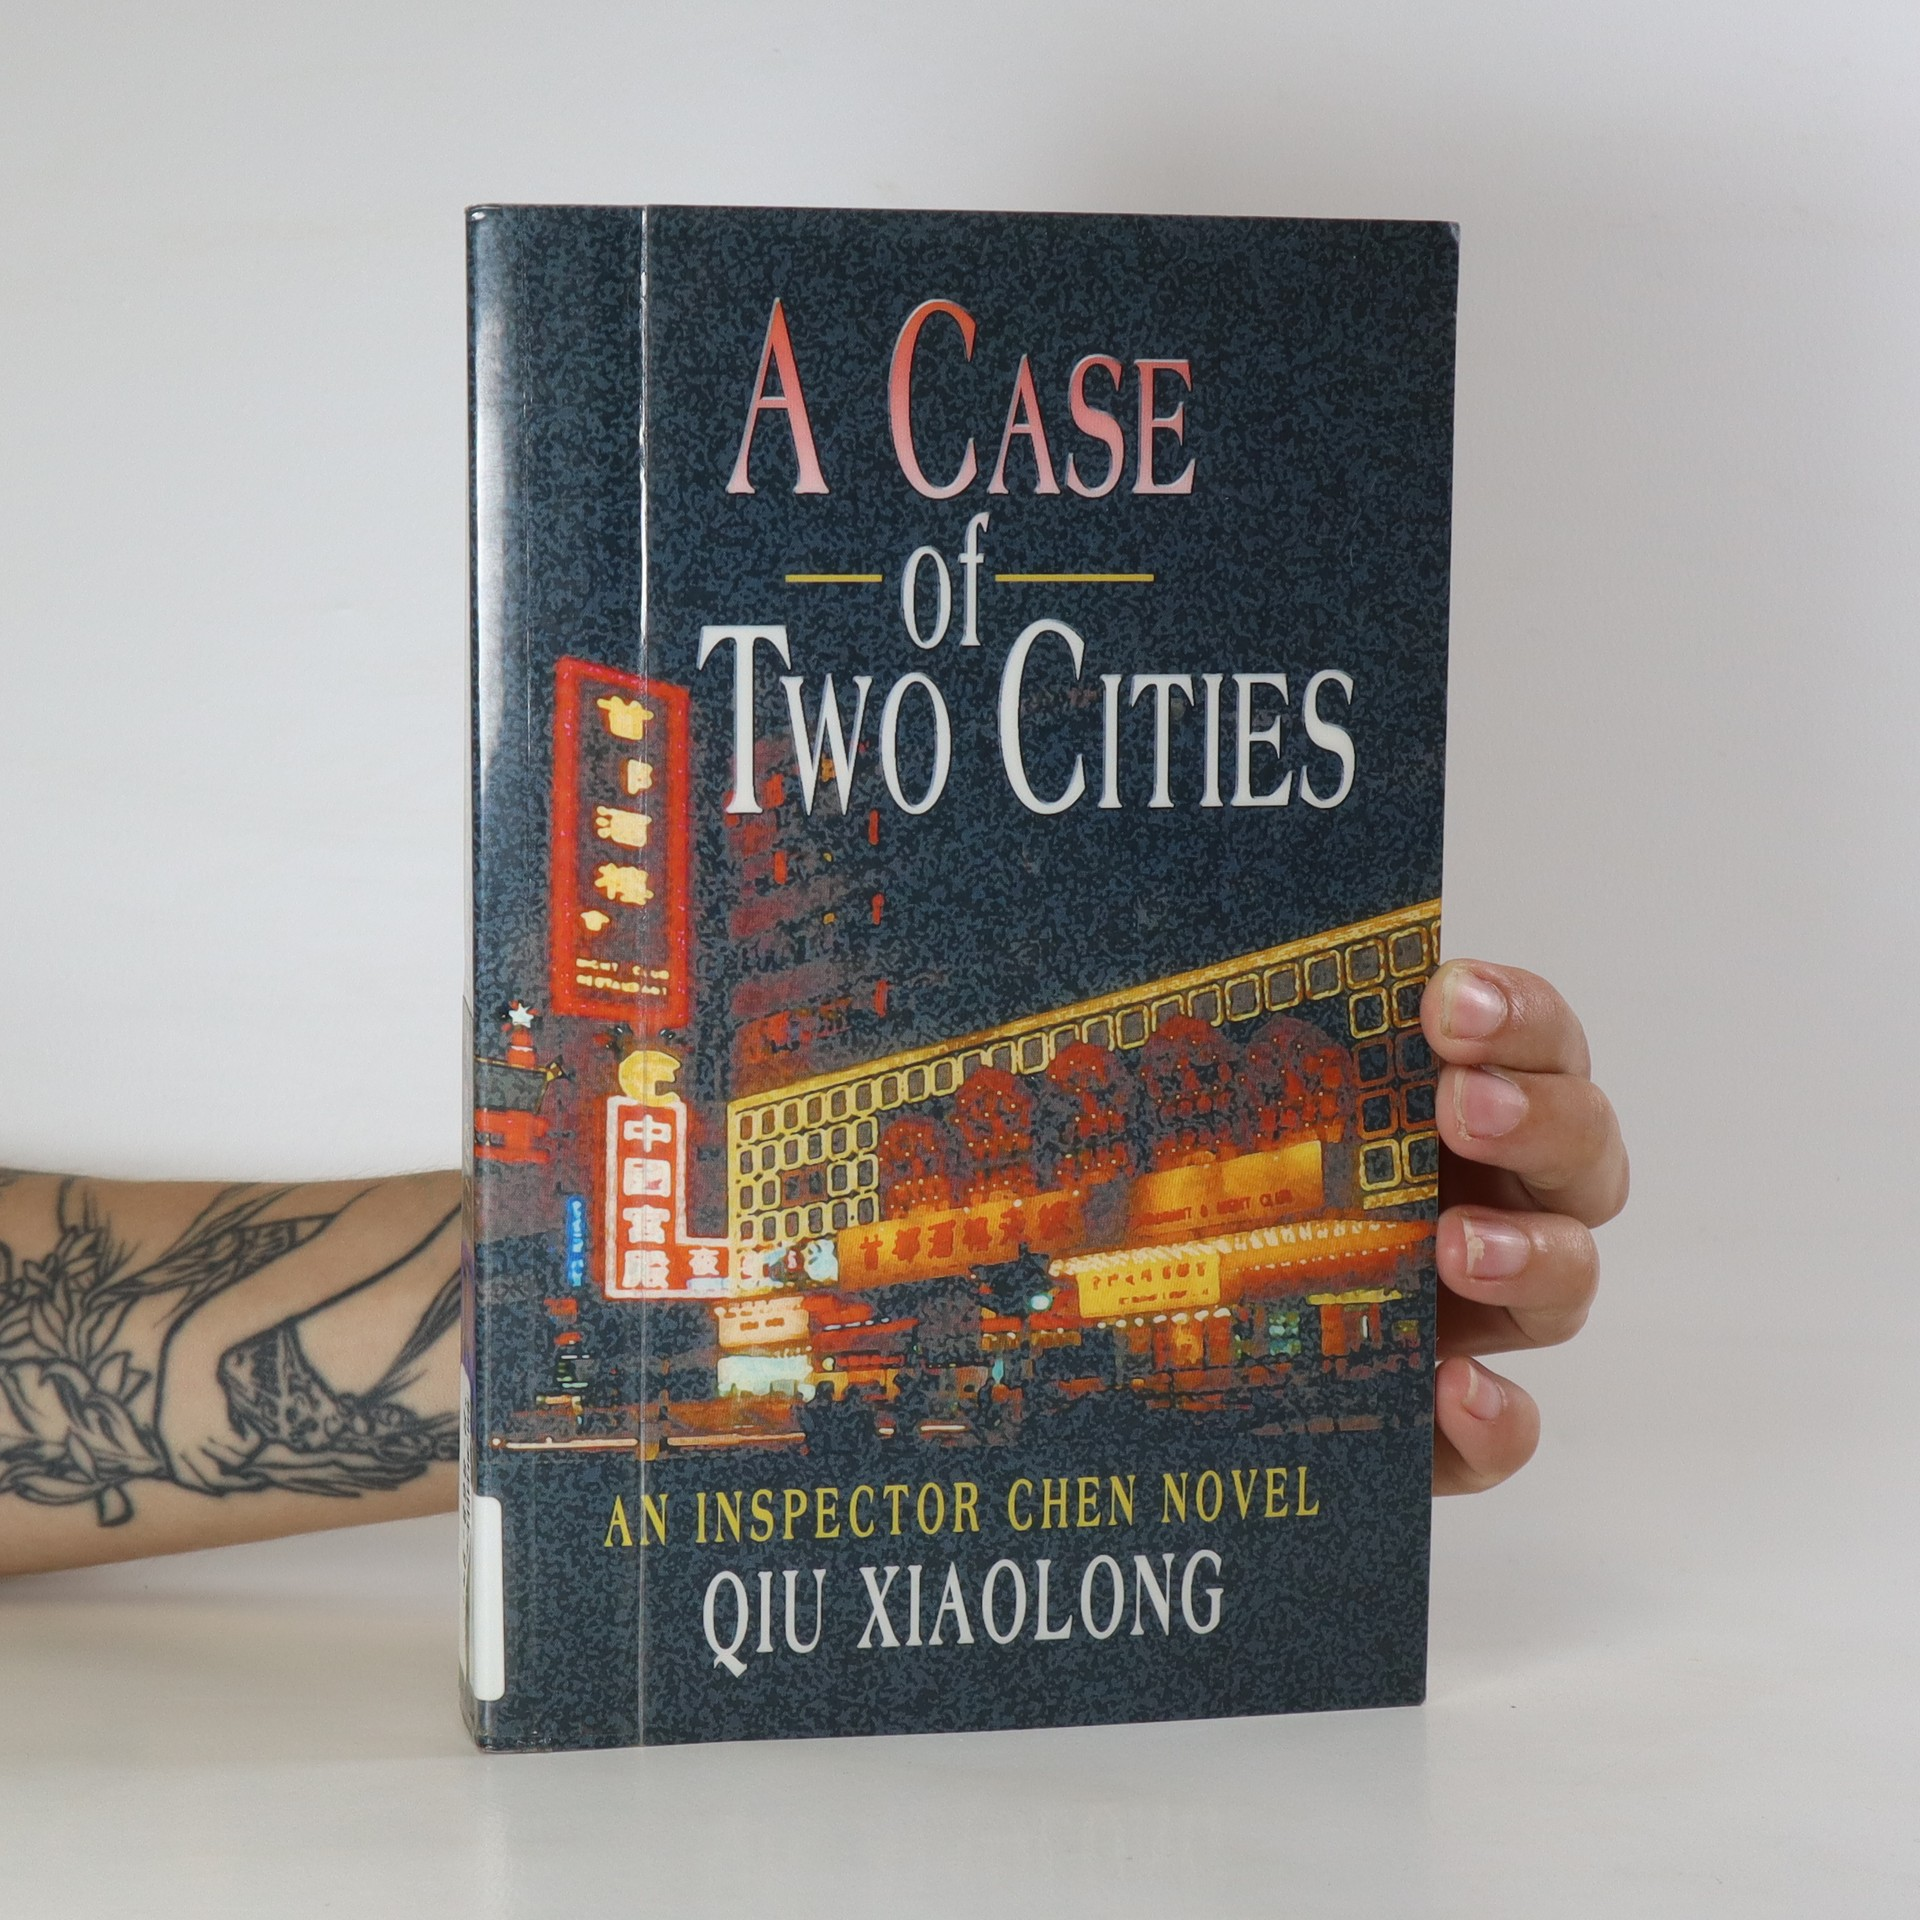 antikvární kniha A Case of Two Cities, 2007